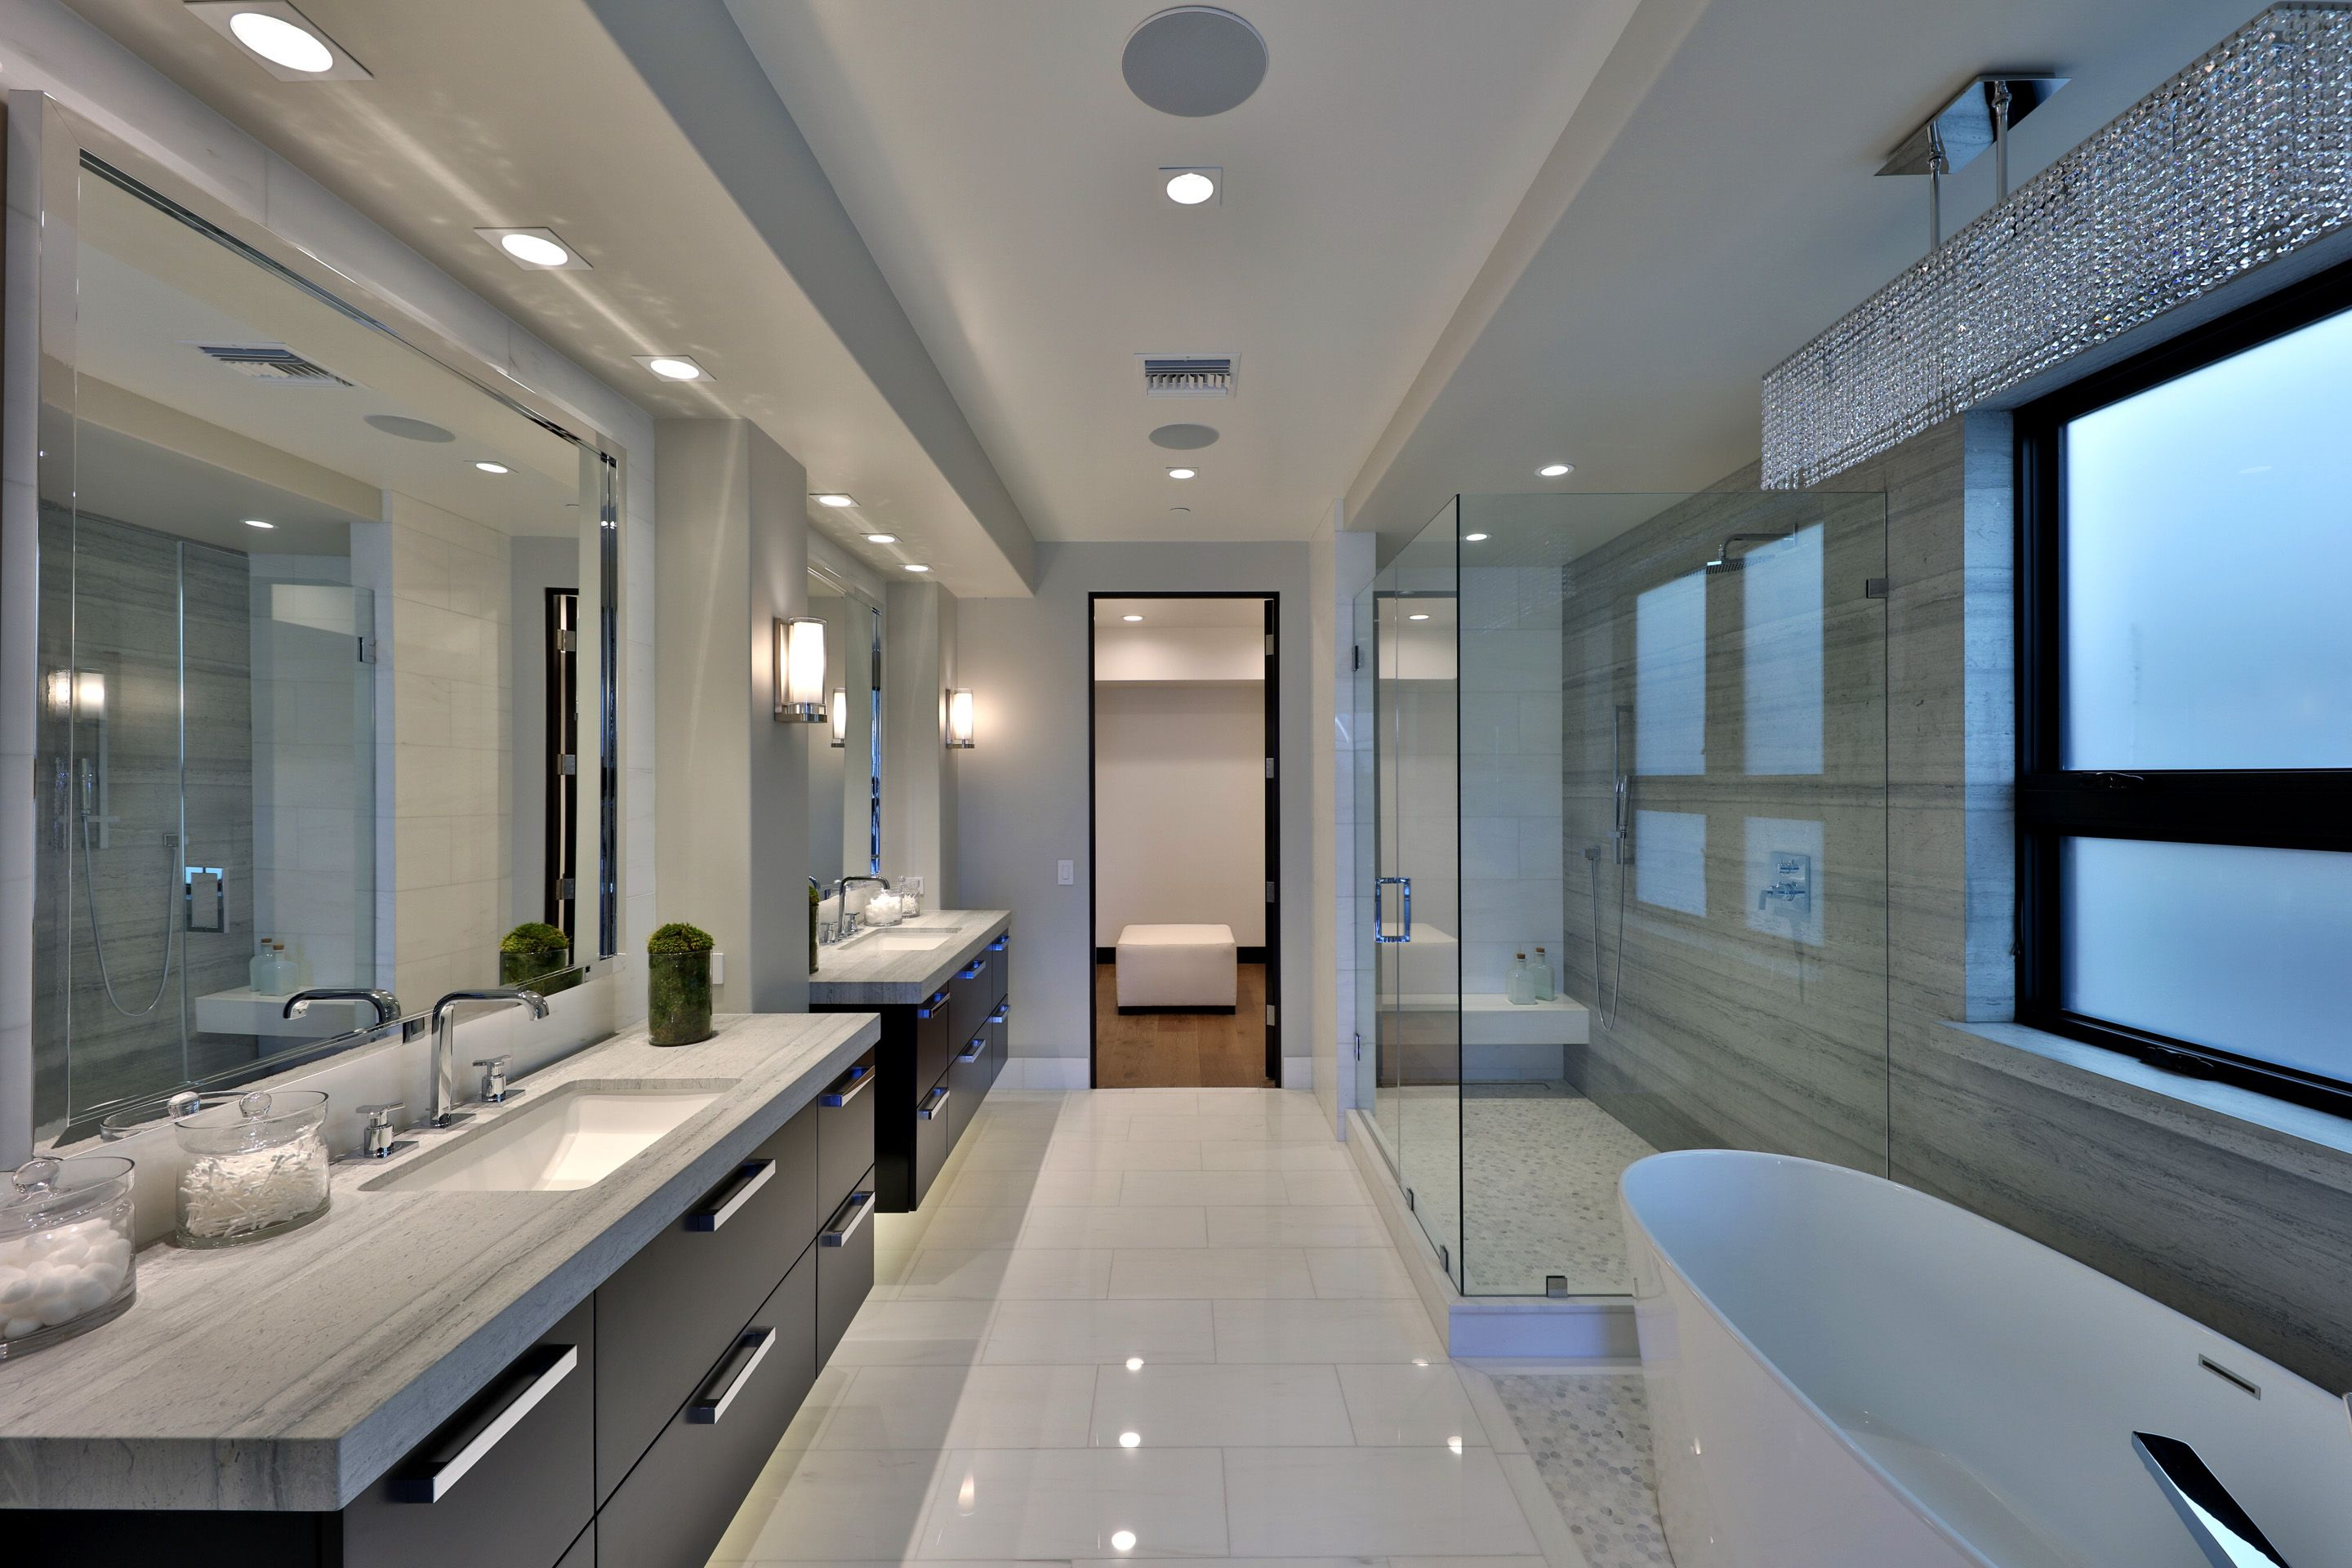 Modern Luxury Master Bath Bathroom Design Luxury Master Bathroom Design Bathroom Interior Design